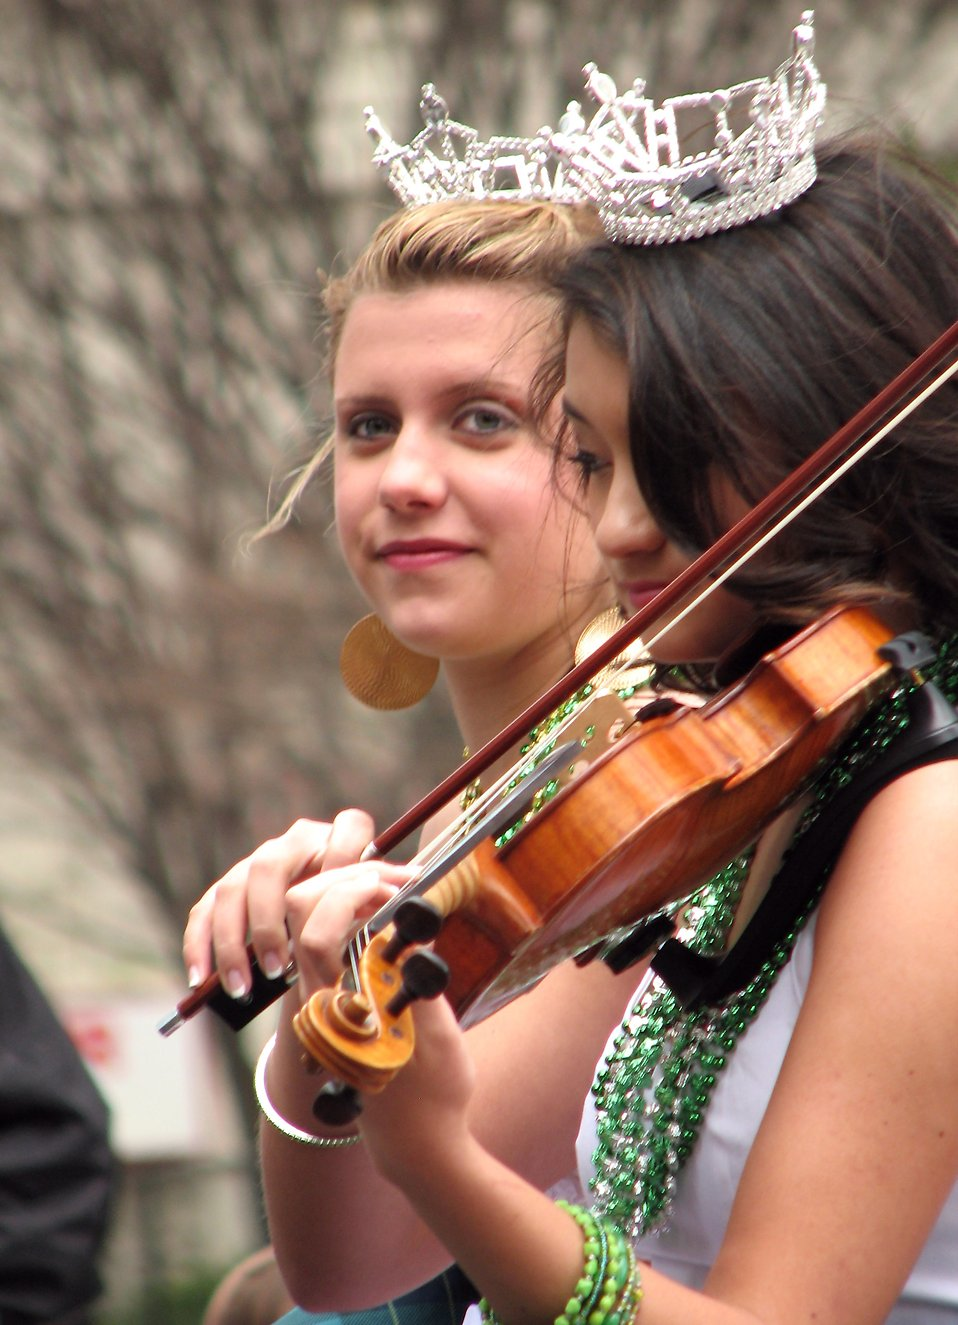 Rachel Grimsley and Brianna Godshalk in the 2010 Atlanta Saint Patrick's Day Parade : Free Stock Photo